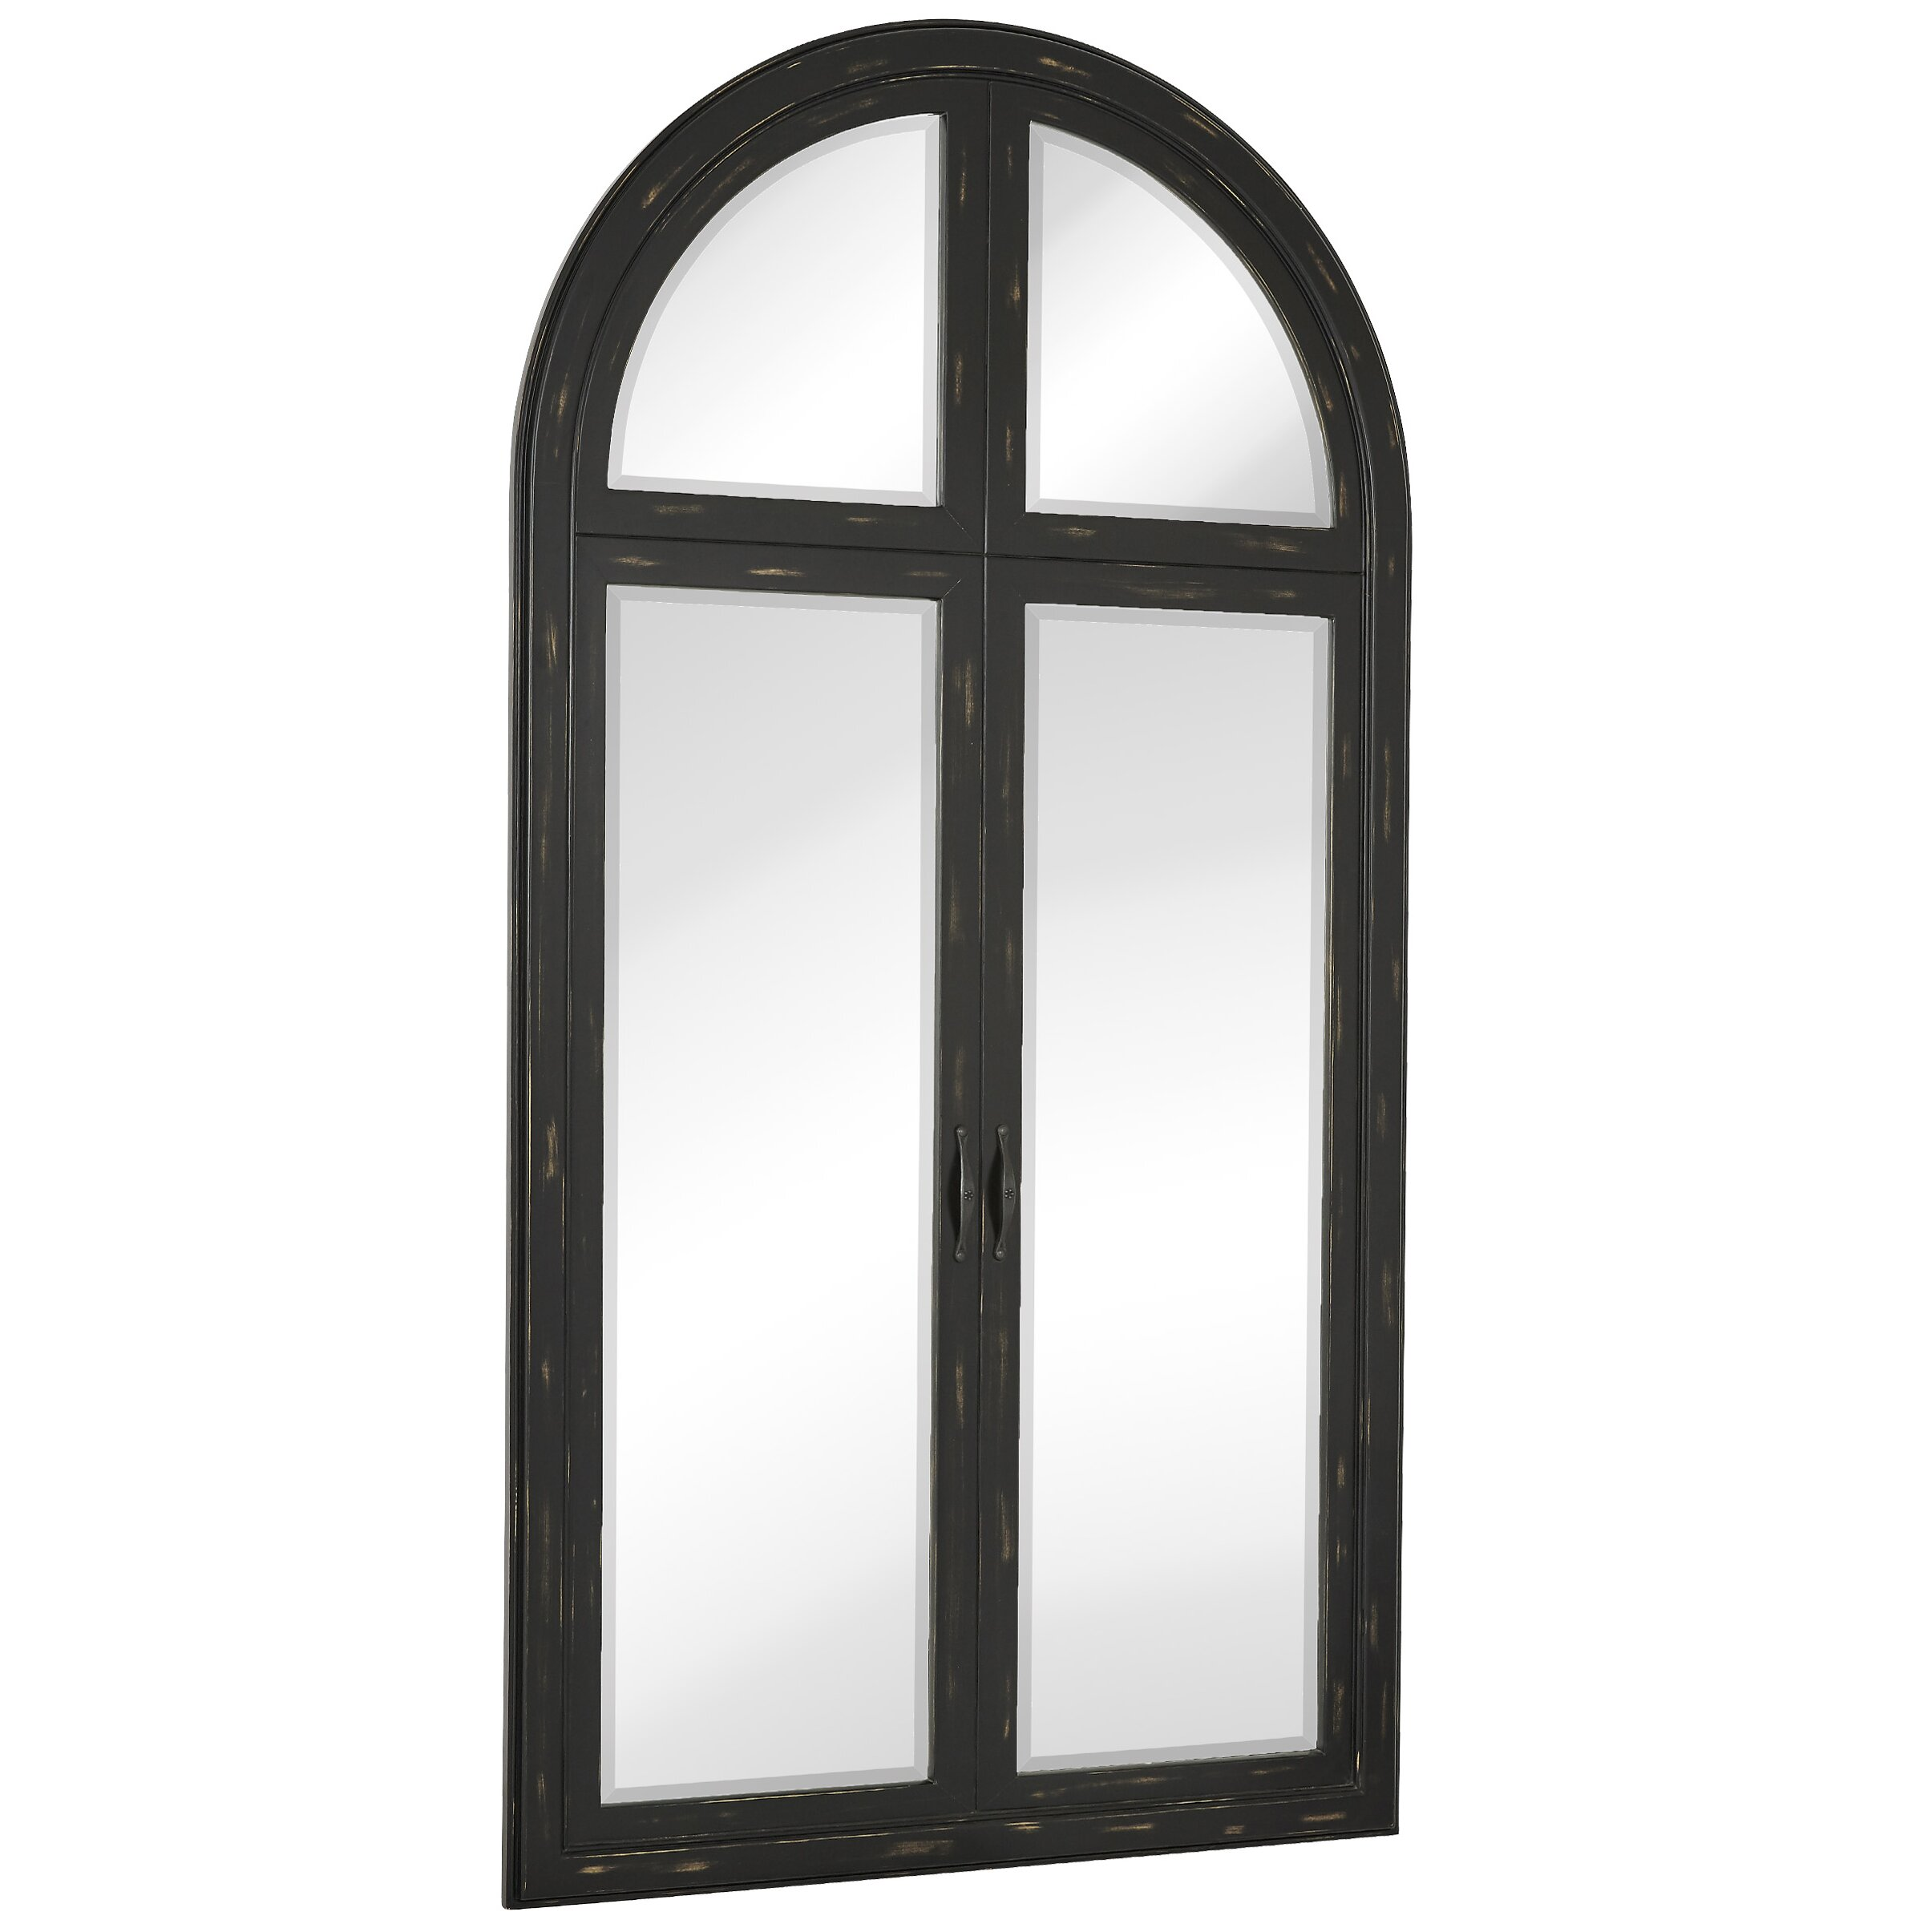 Majestic mirror beveled glass full length wall mirror for Full wall mirrors